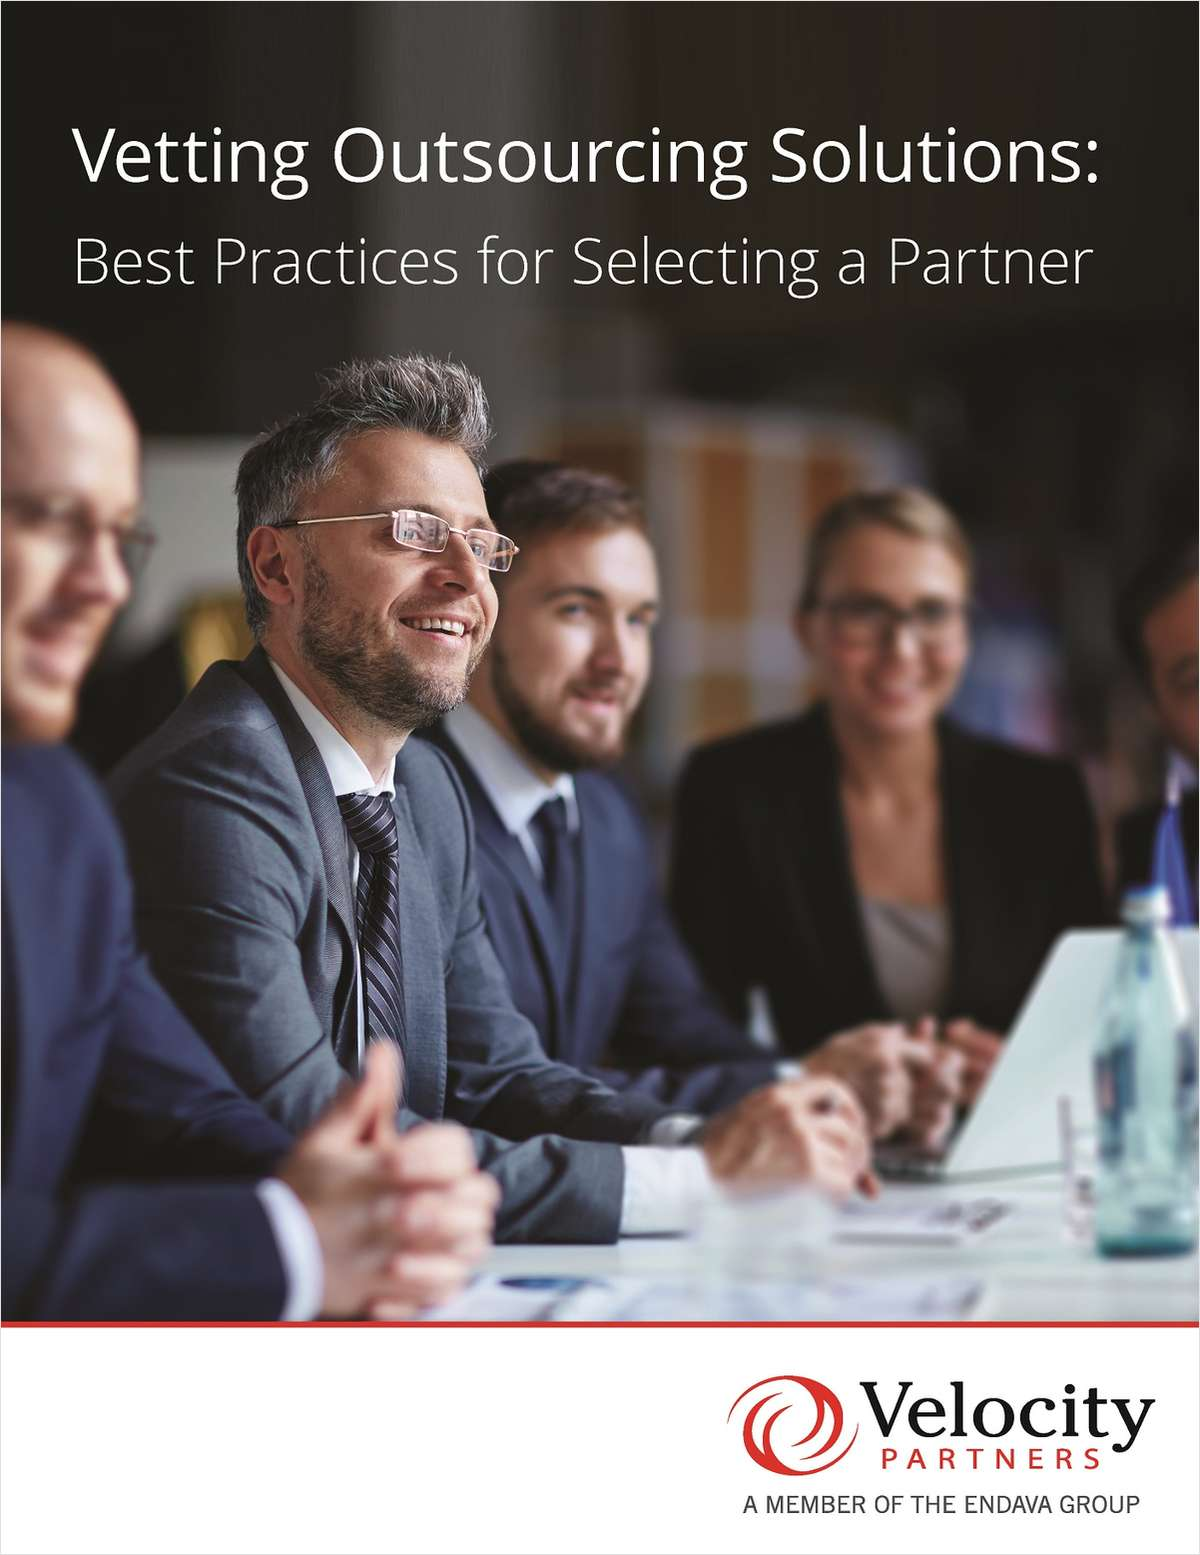 Vetting Outsourcing Solutions: Best Practices for Selecting a Partner